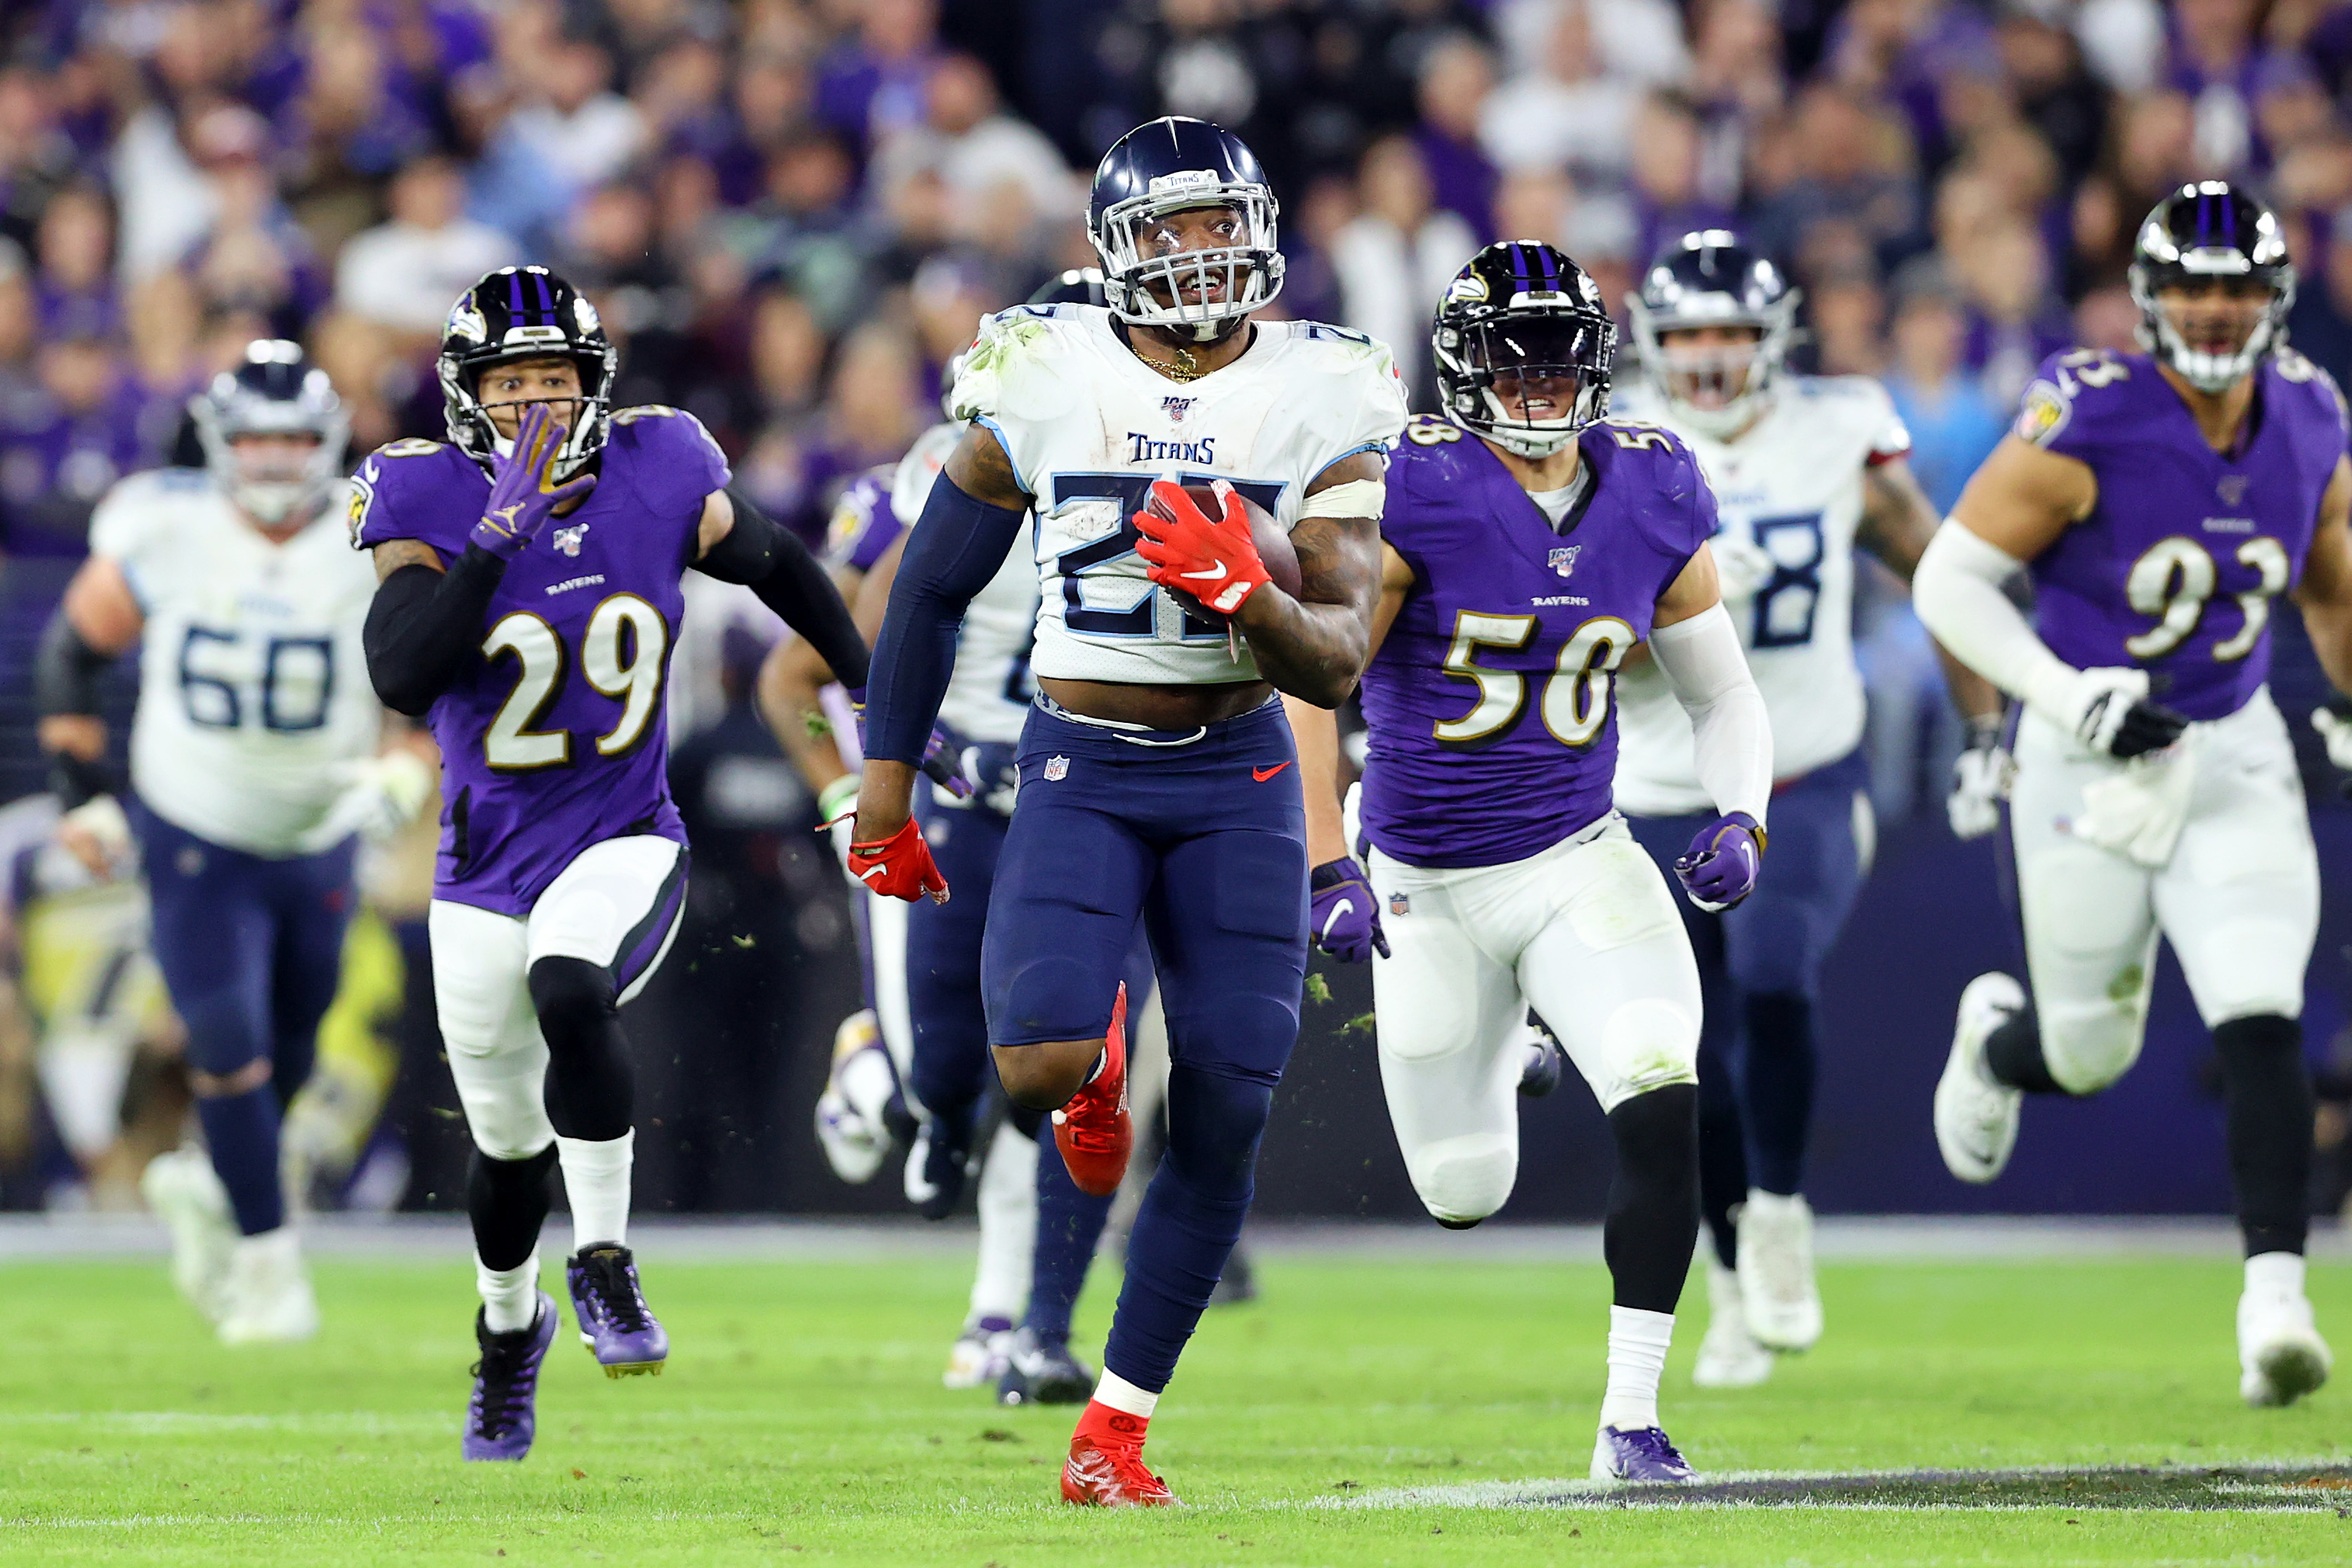 titans # 27 being chased by Ravens #'s 29,50,93